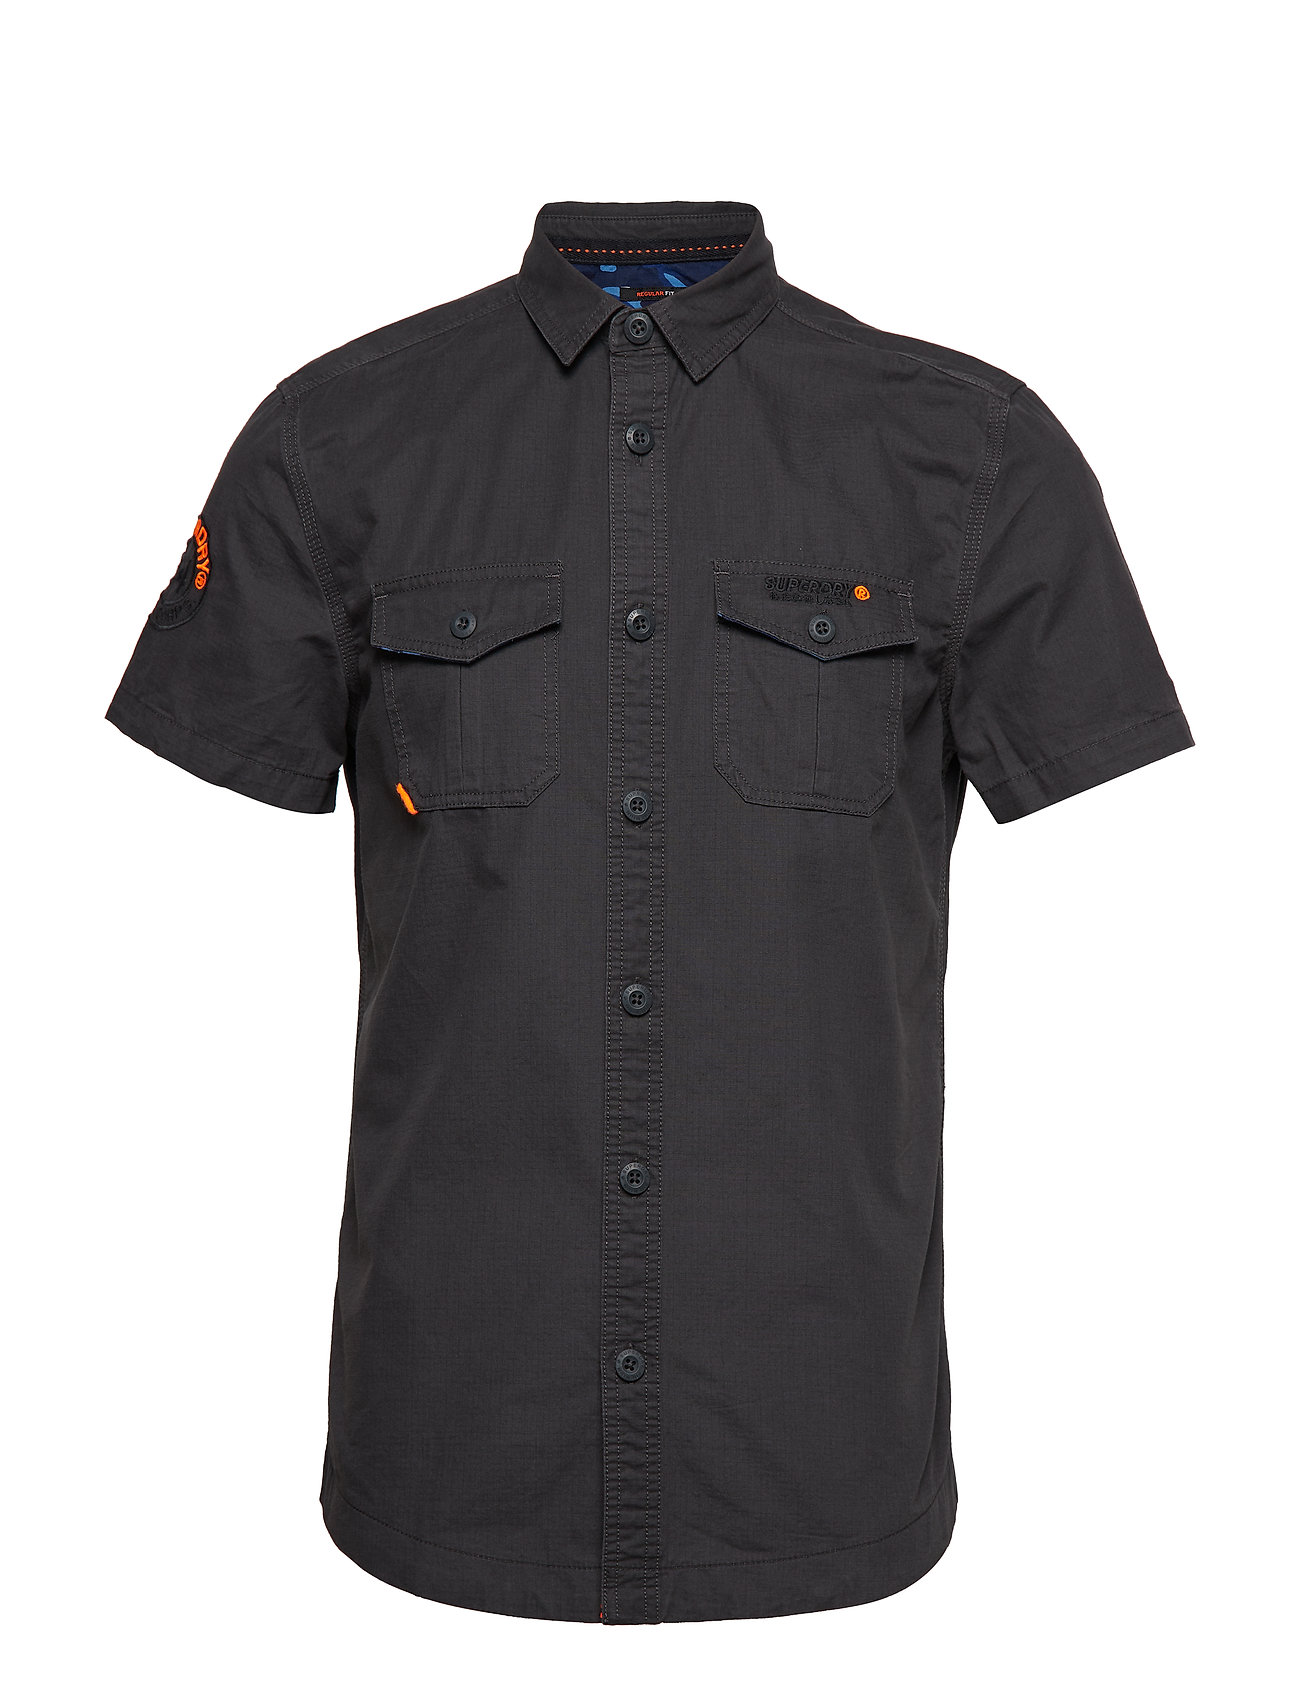 Superdry S/S ROOKIE PARACHUTE LITE SHIRT - WASHED BLACK